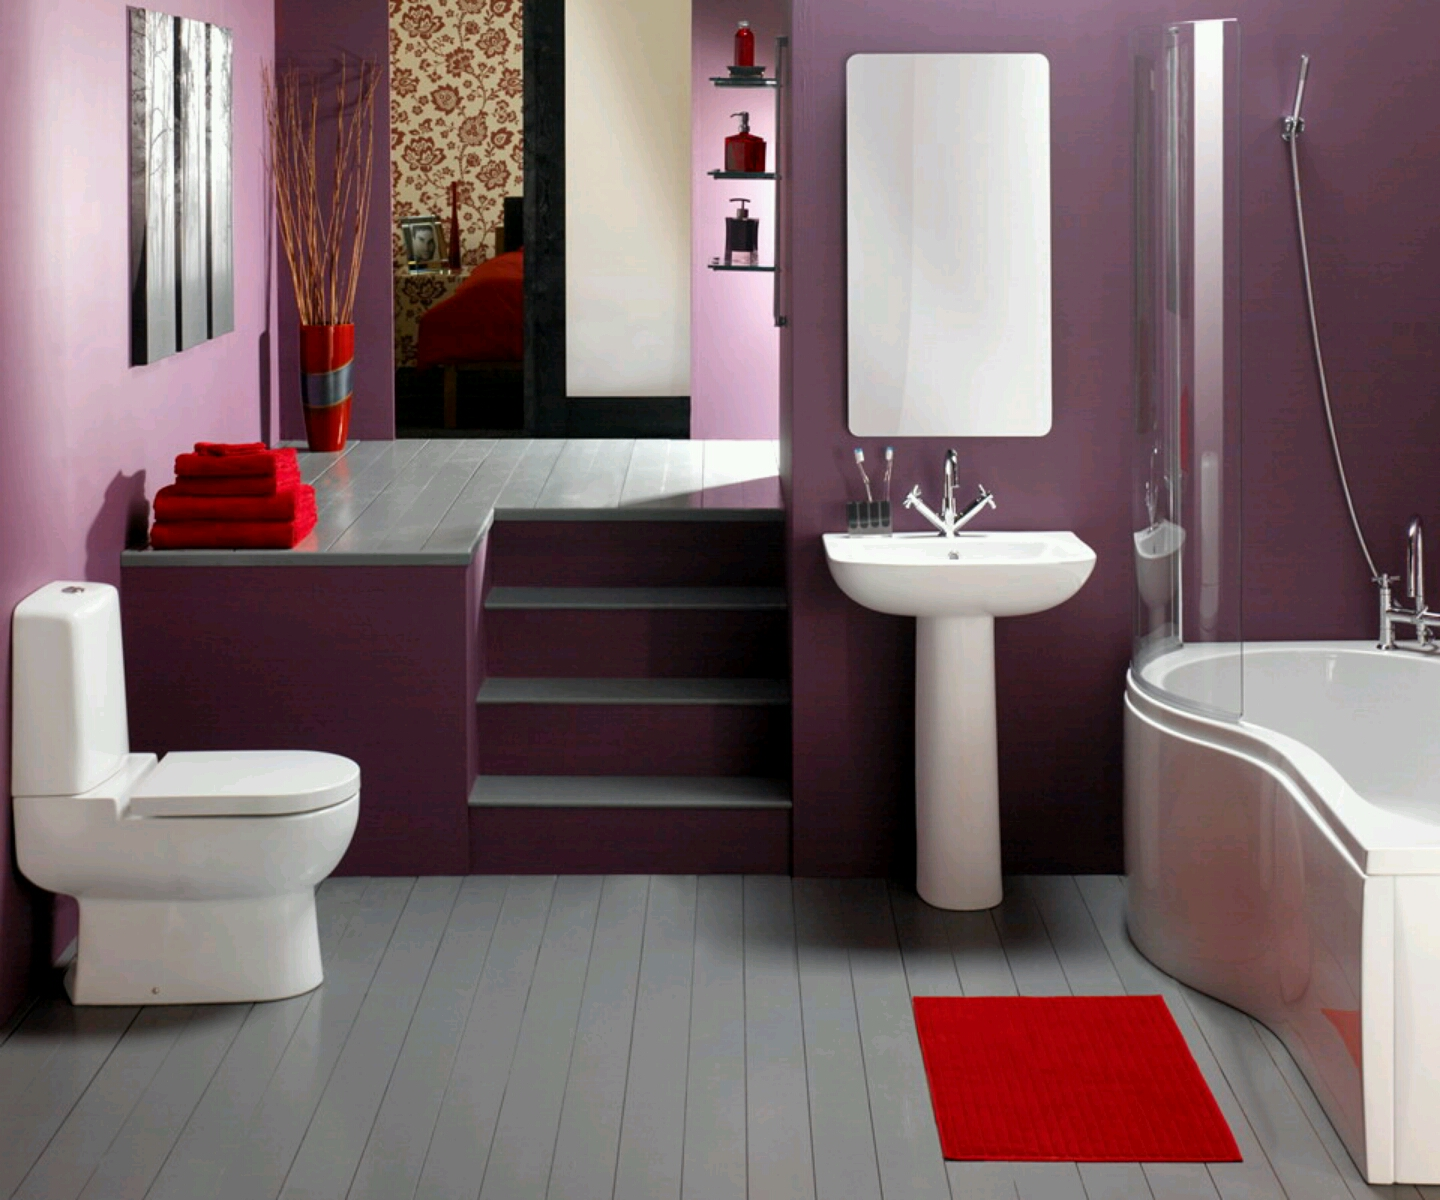 New Home Designs Latest Luxury Homes Interior Designs Ideas: Mis Decoraciones: Baños Con Acabados En Morado